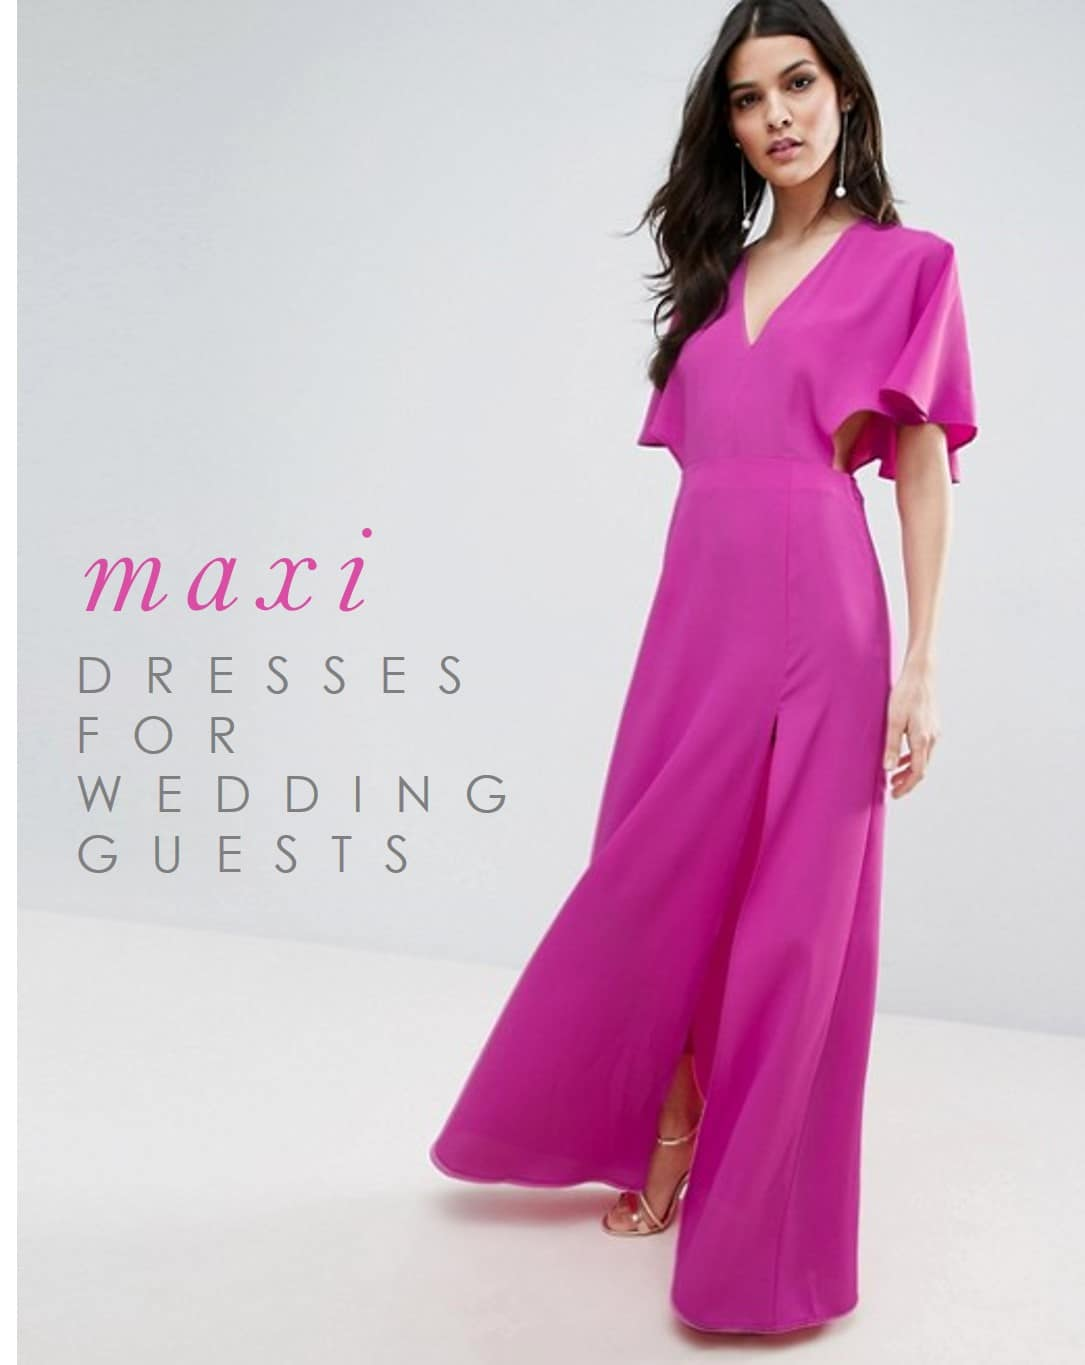 4dc1f91b10 Maxi Dresses for Wedding Guests